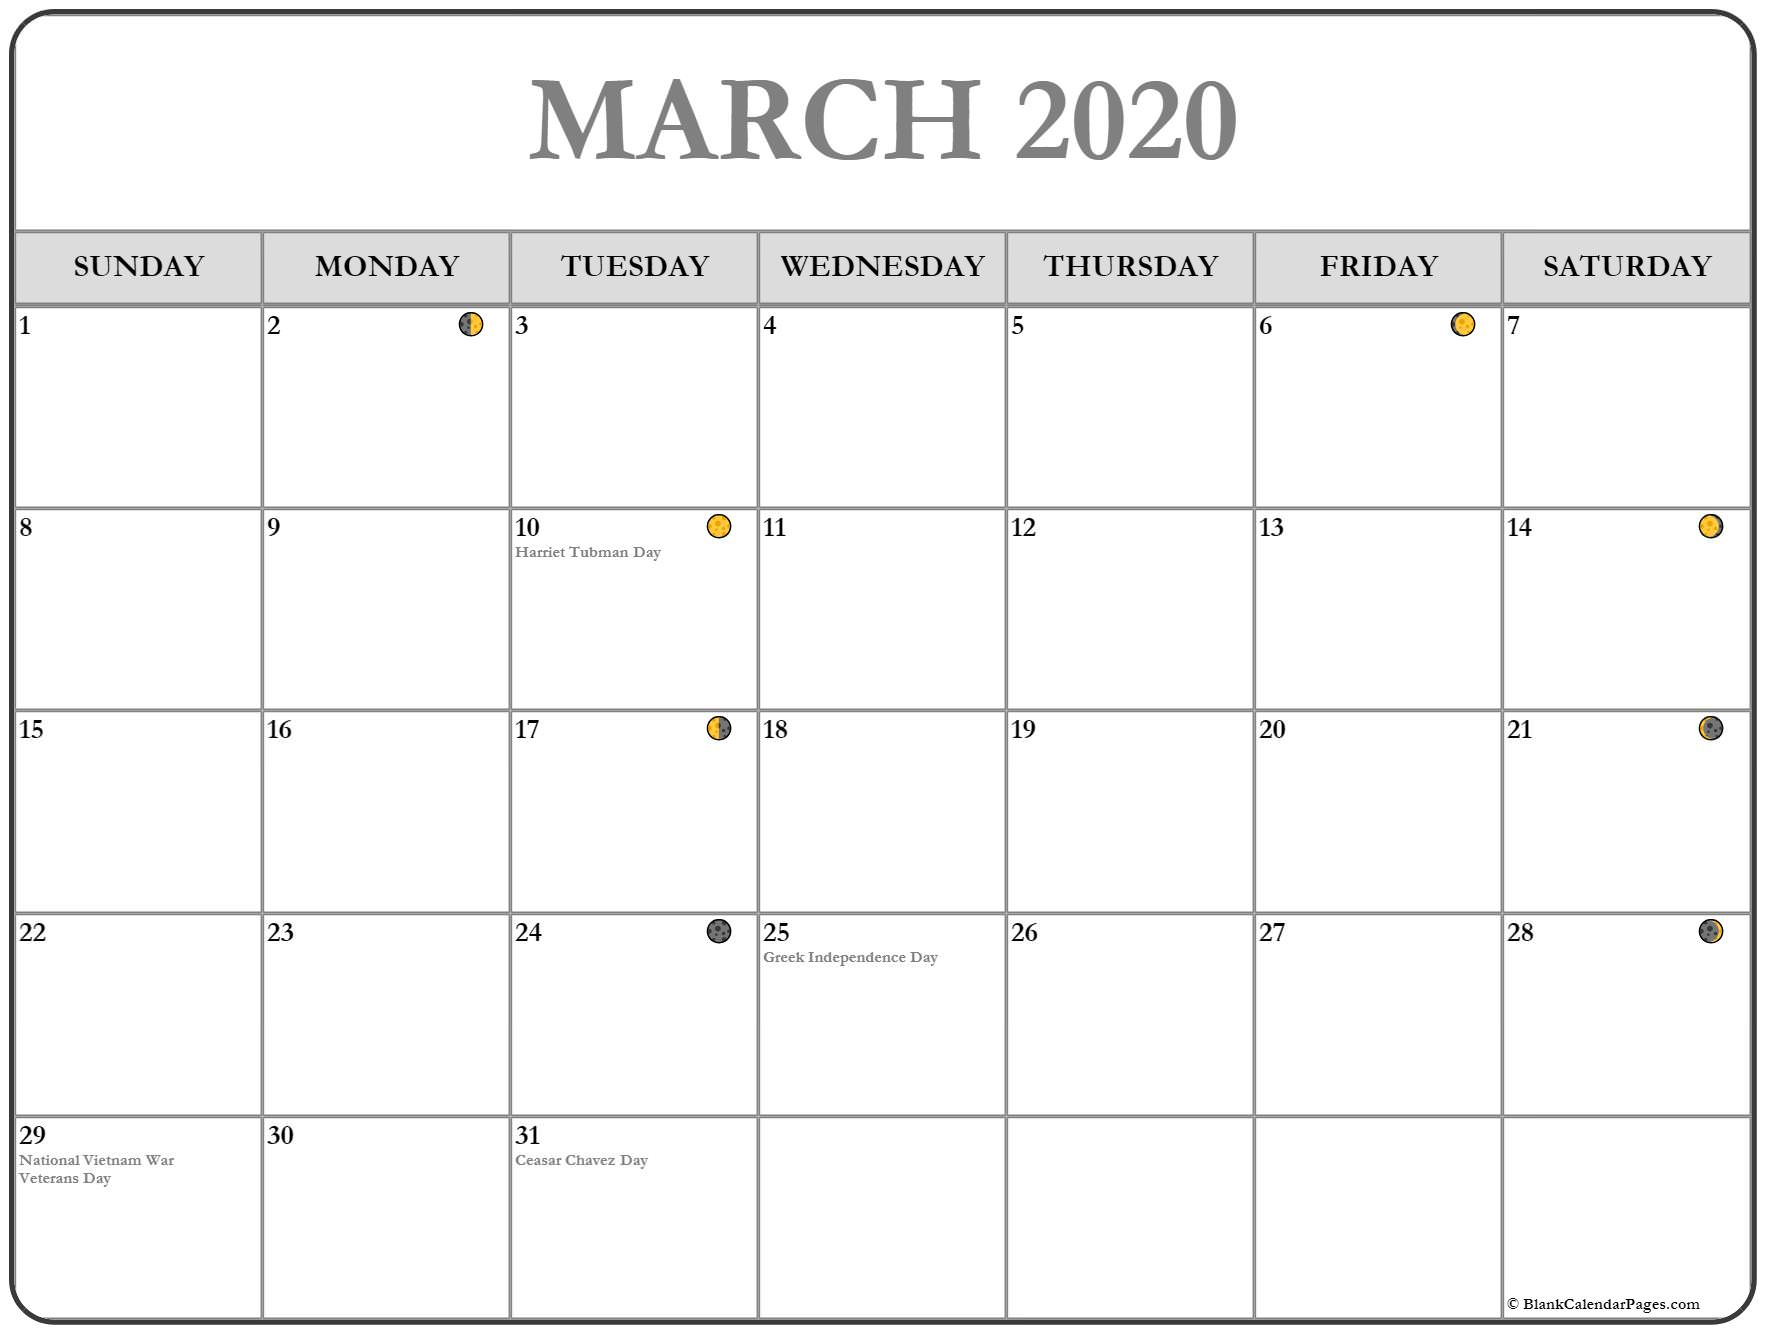 March 2020 Lunar Calendar | Moon Phase Calendar